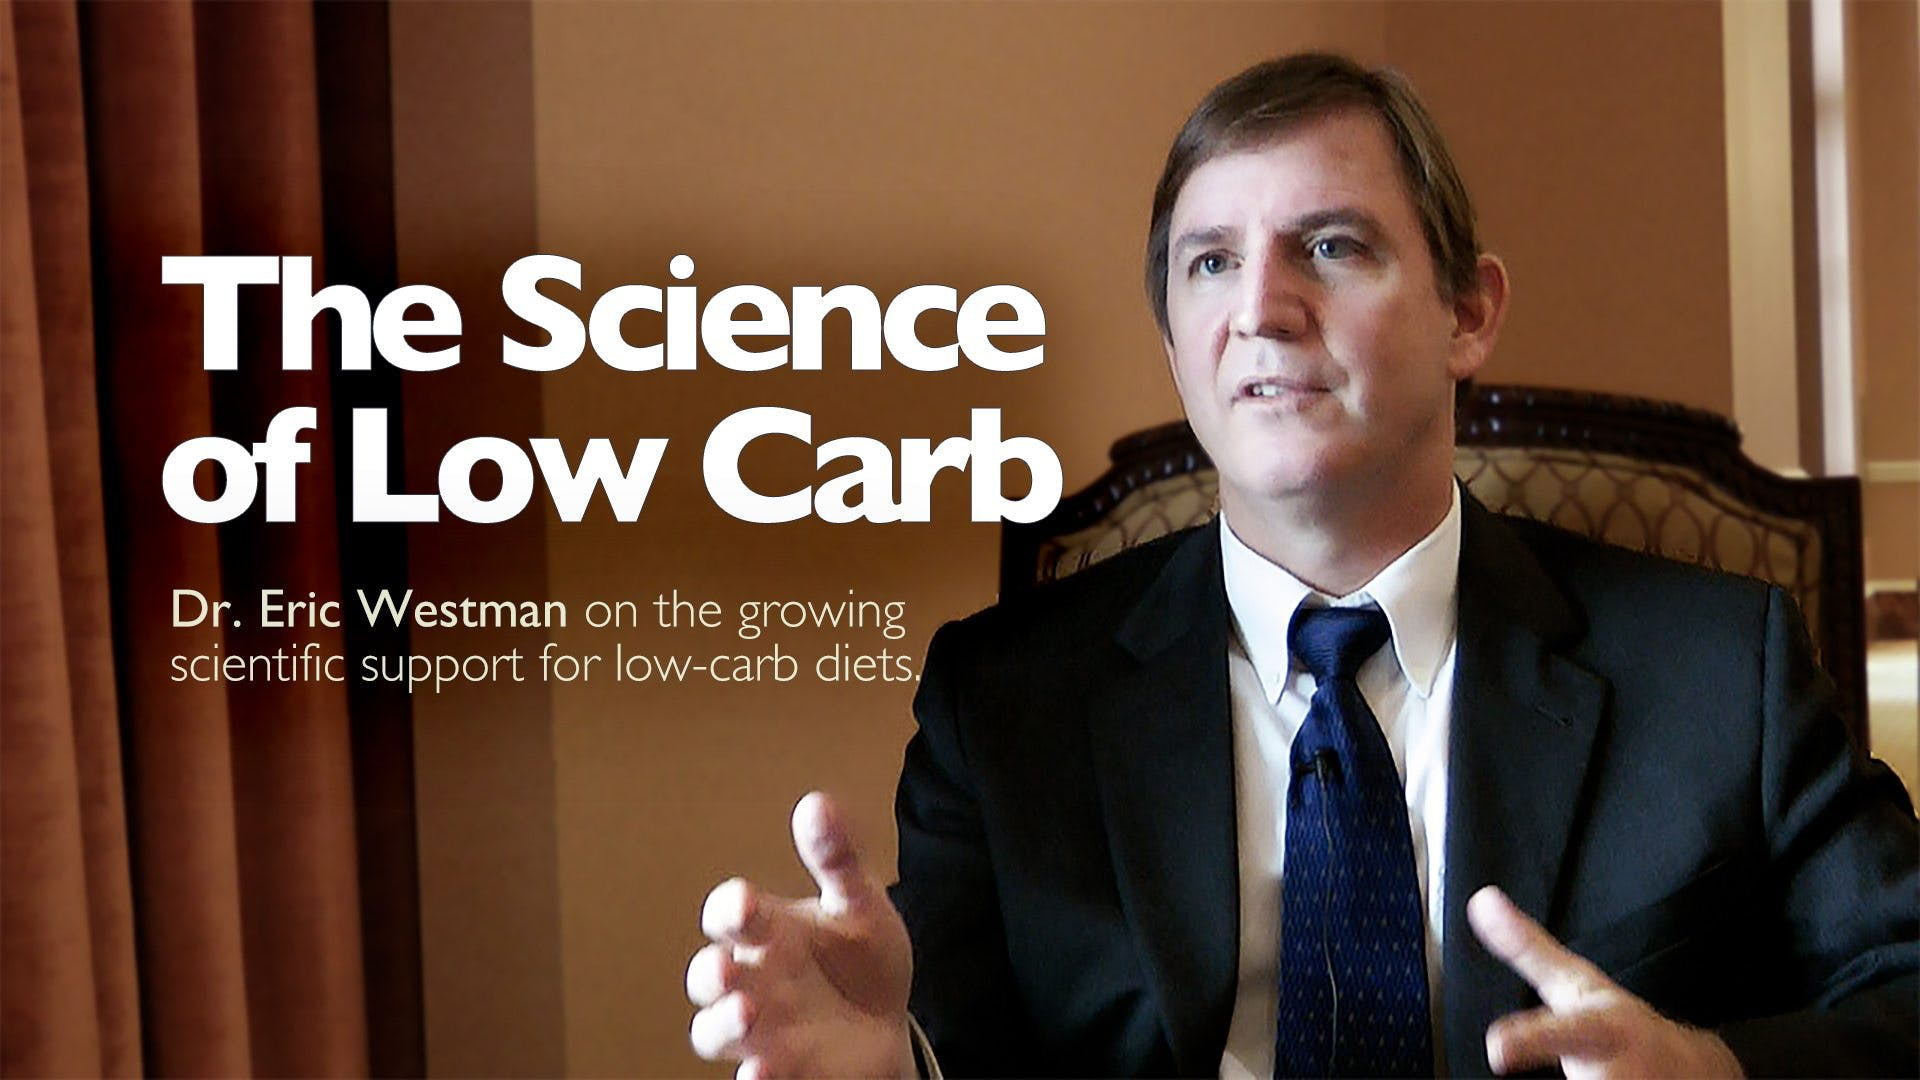 The Science of Low Carb – Dr. Eric Westman